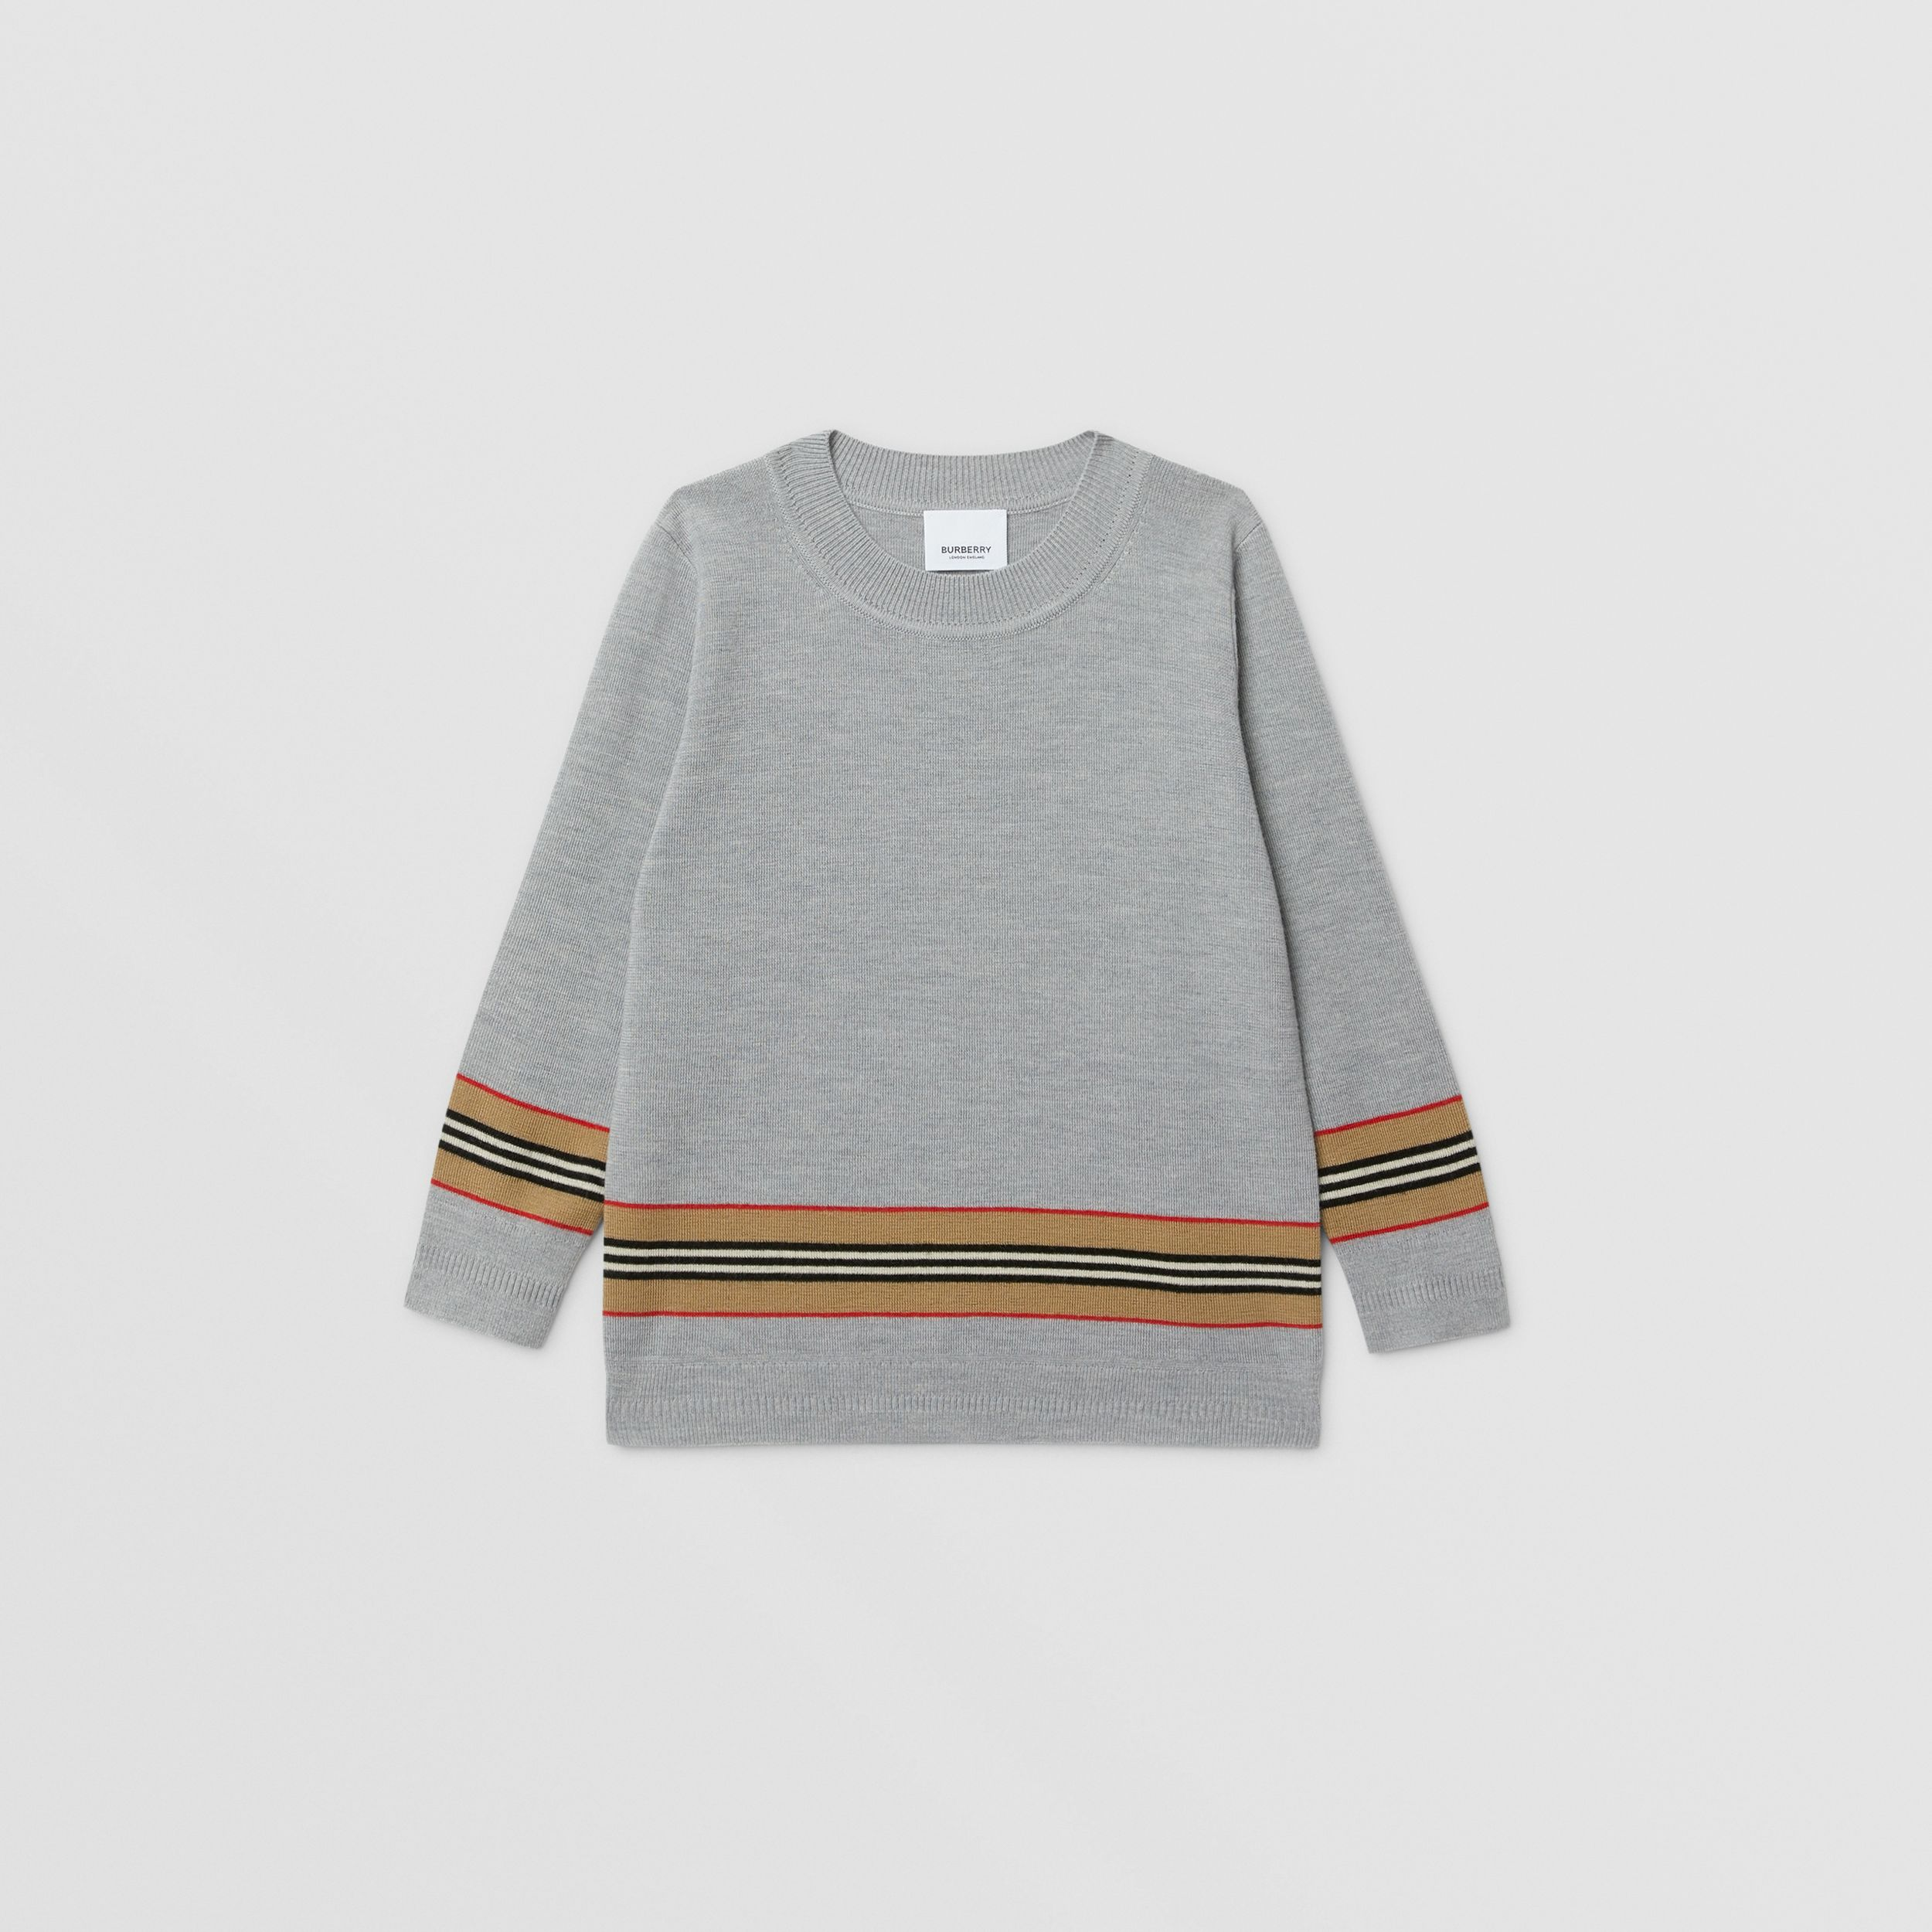 Icon Stripe Panel Merino Wool Sweater in Grey Melange | Burberry - 1